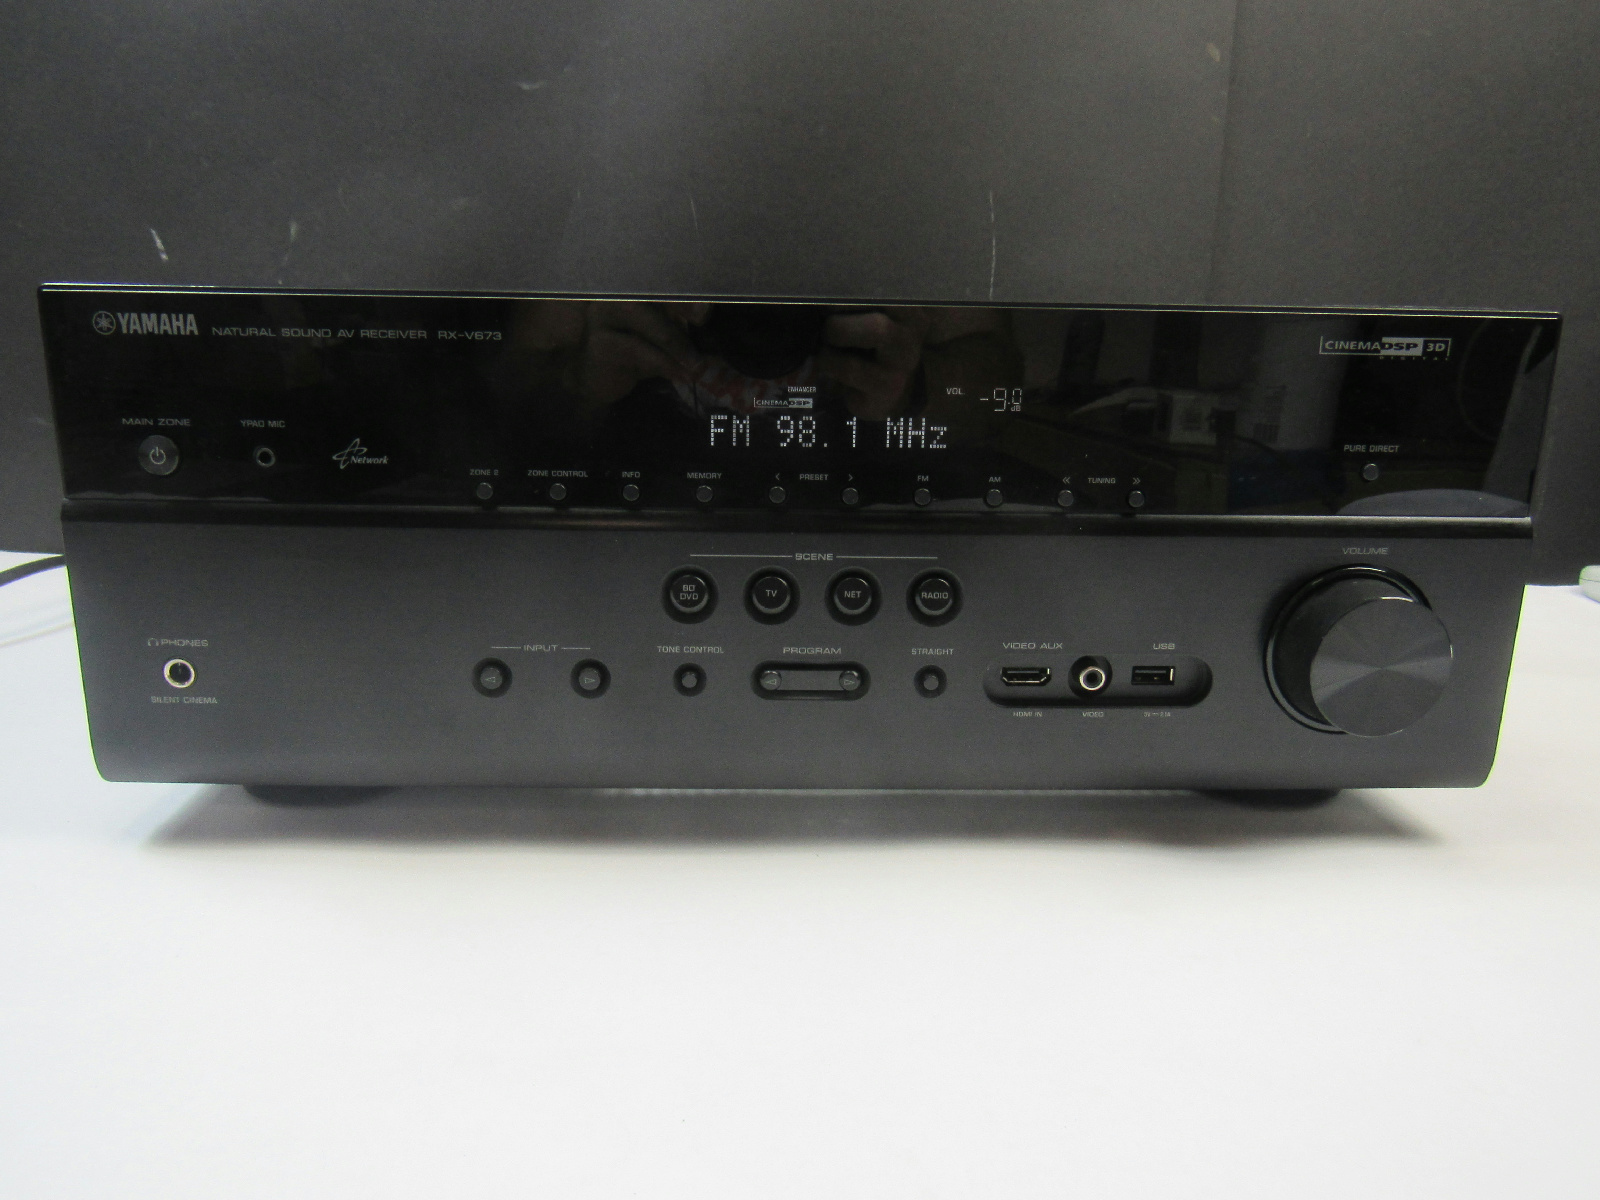 Yamaha rx v673 home theater receiver 27108941219 ebay for Yamaha receiver rx v673 manual